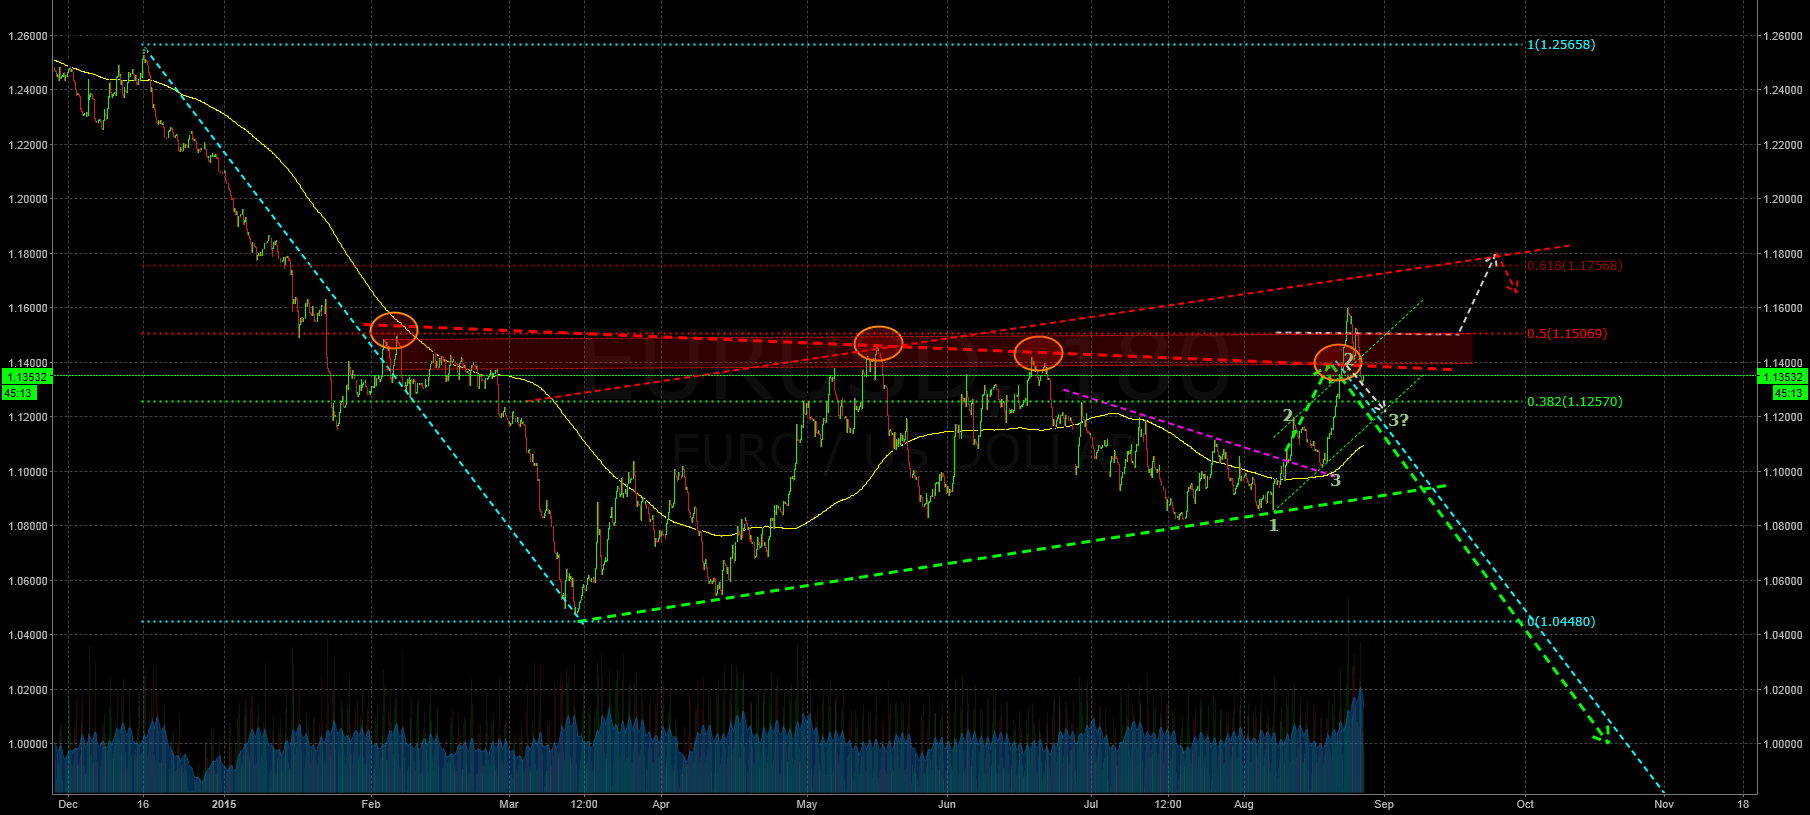 Last but not least - here is the pullback!